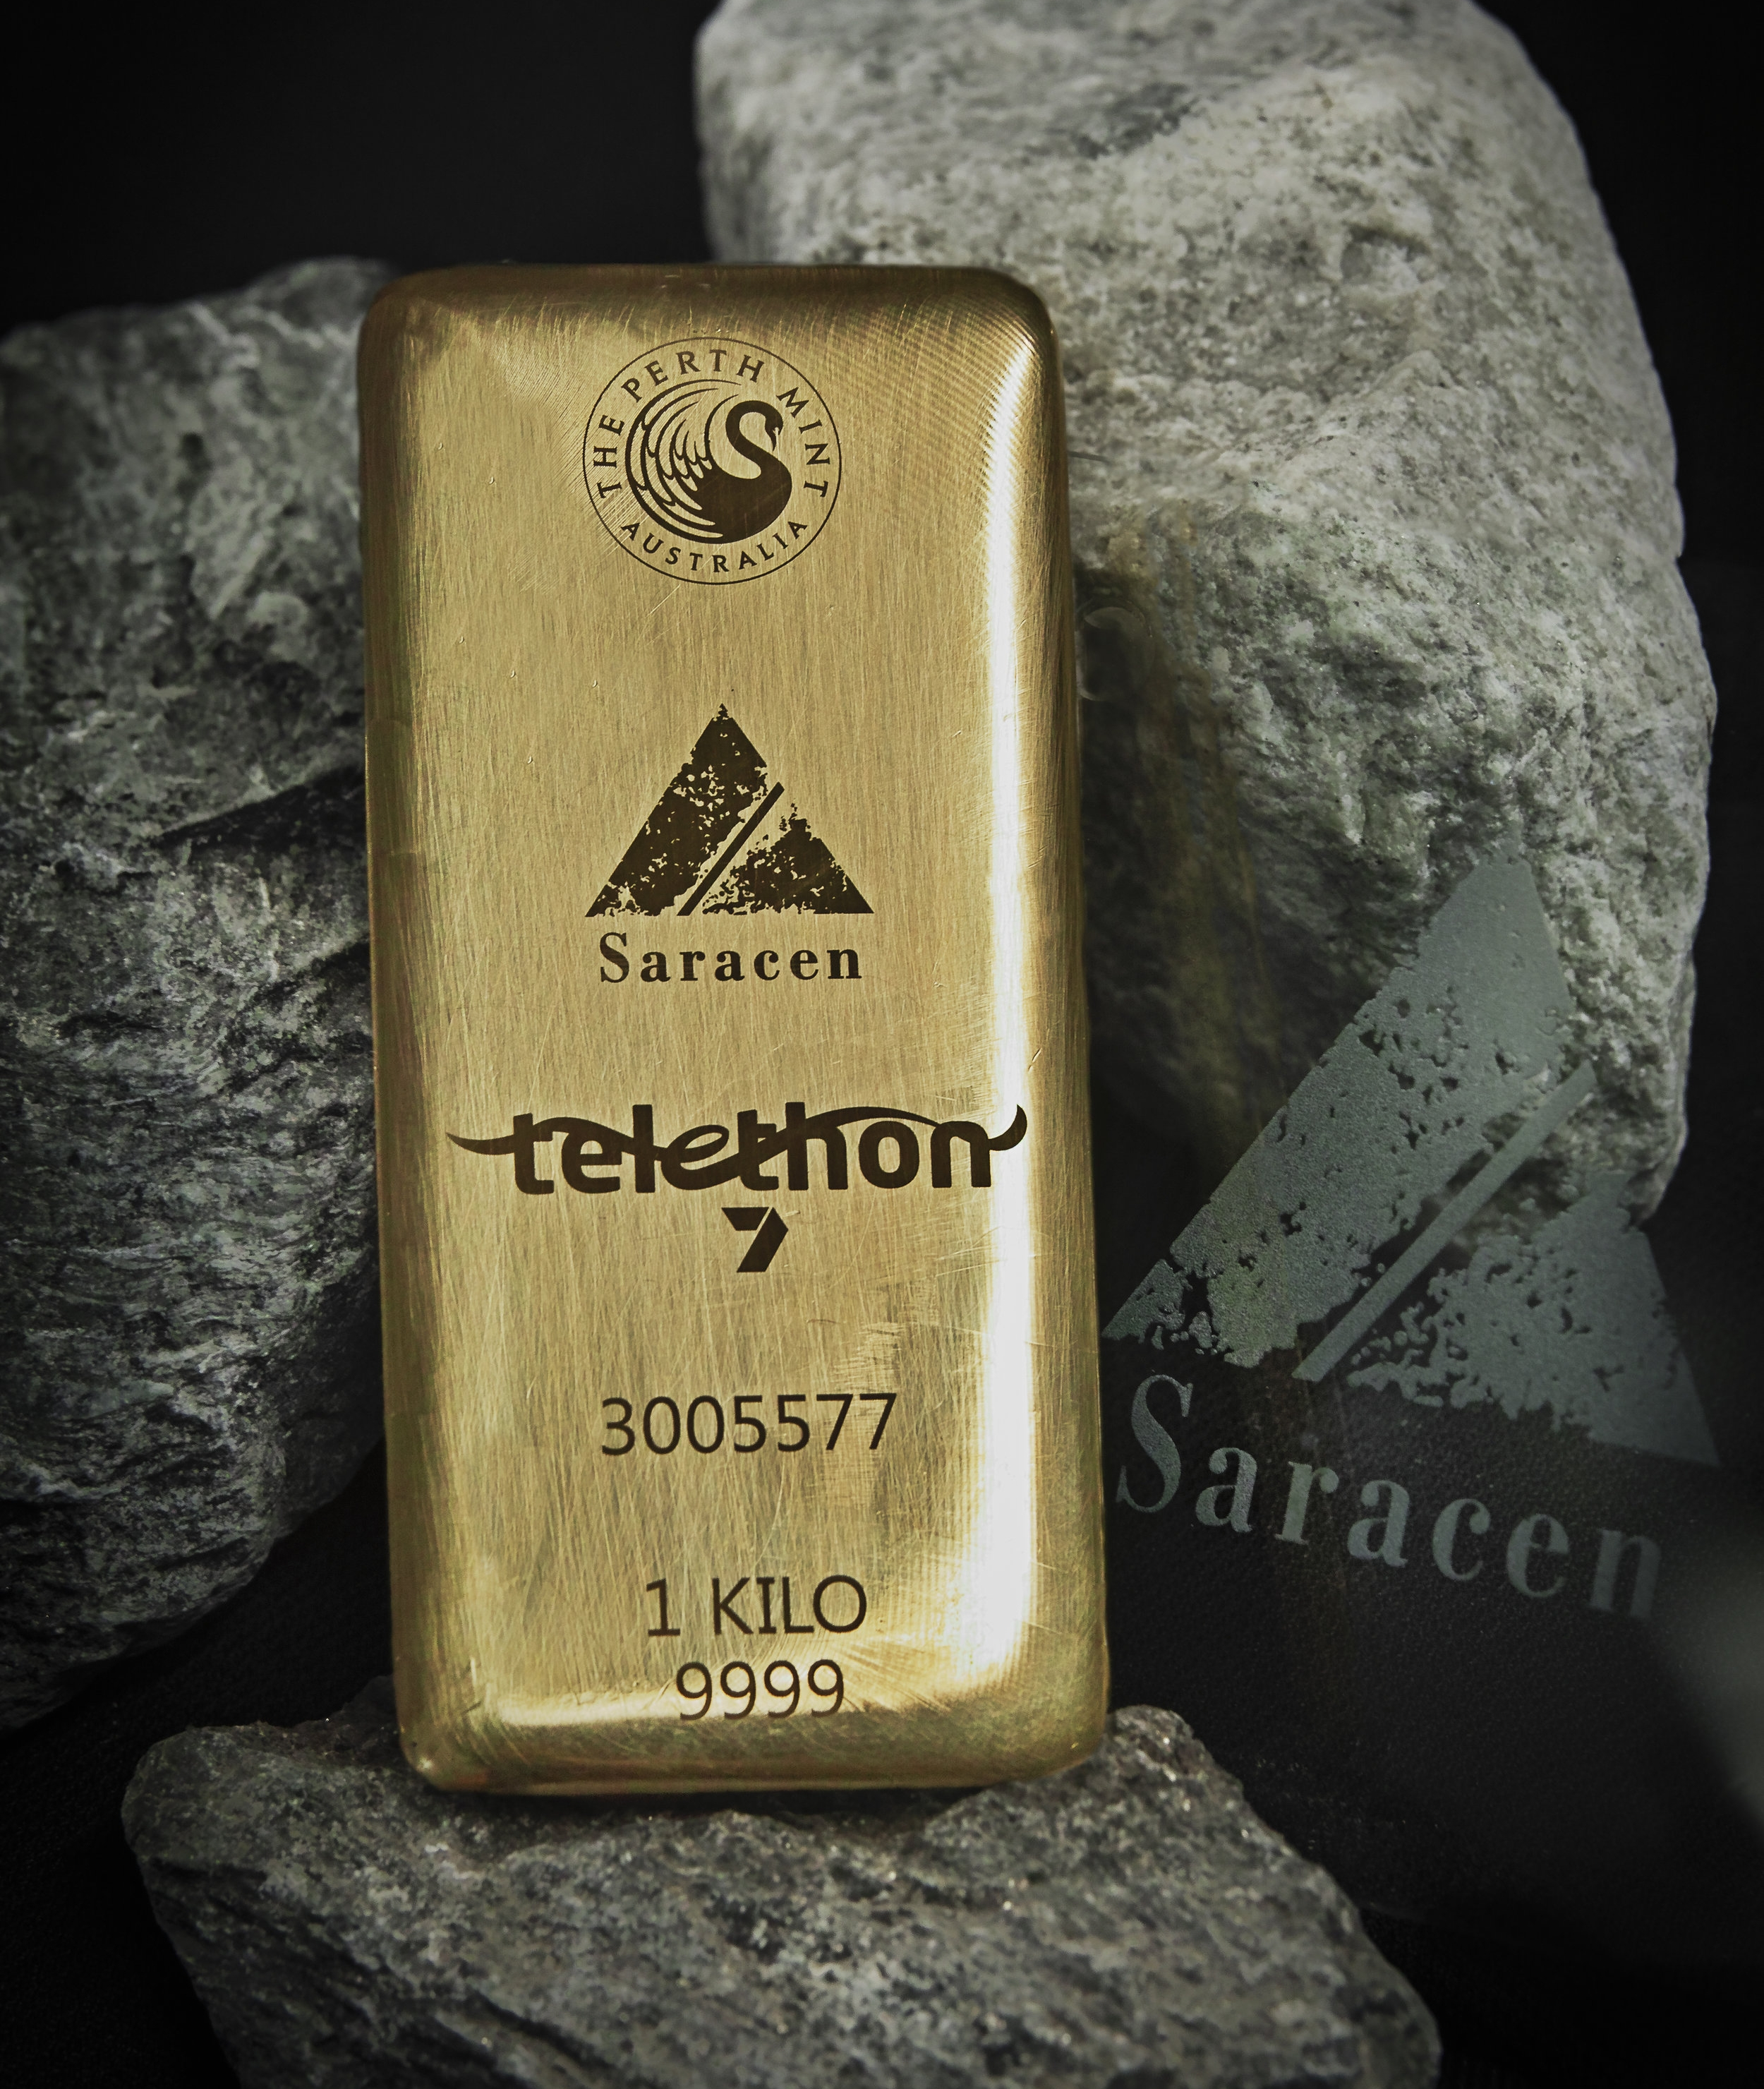 The one-of-a-kind gold bar donated by Saracen Mineral Holdings to Telethon 2018.